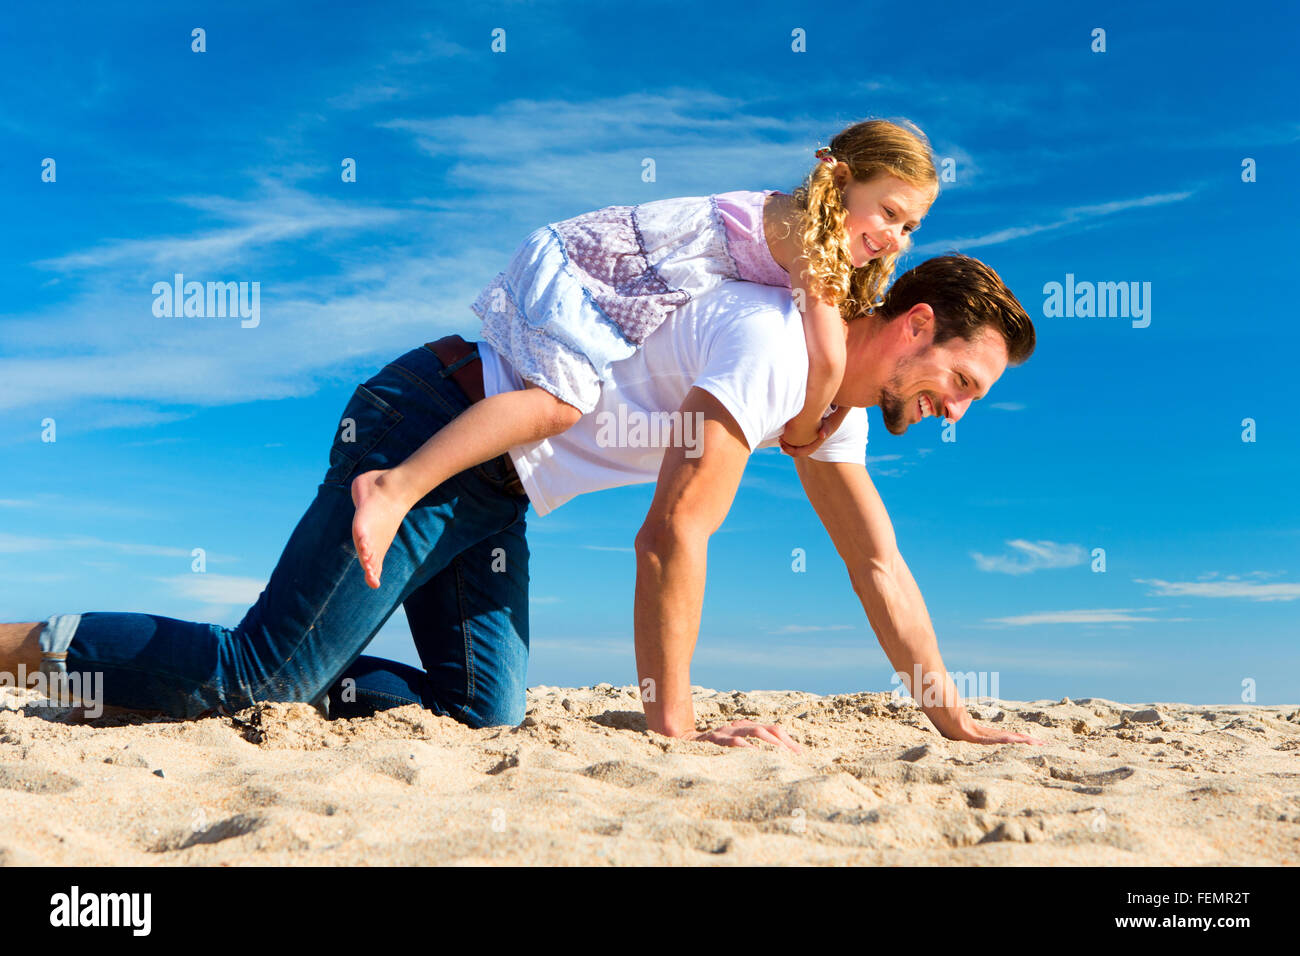 Father carrying his daughter on his back along the sand on the beach. - Stock Image